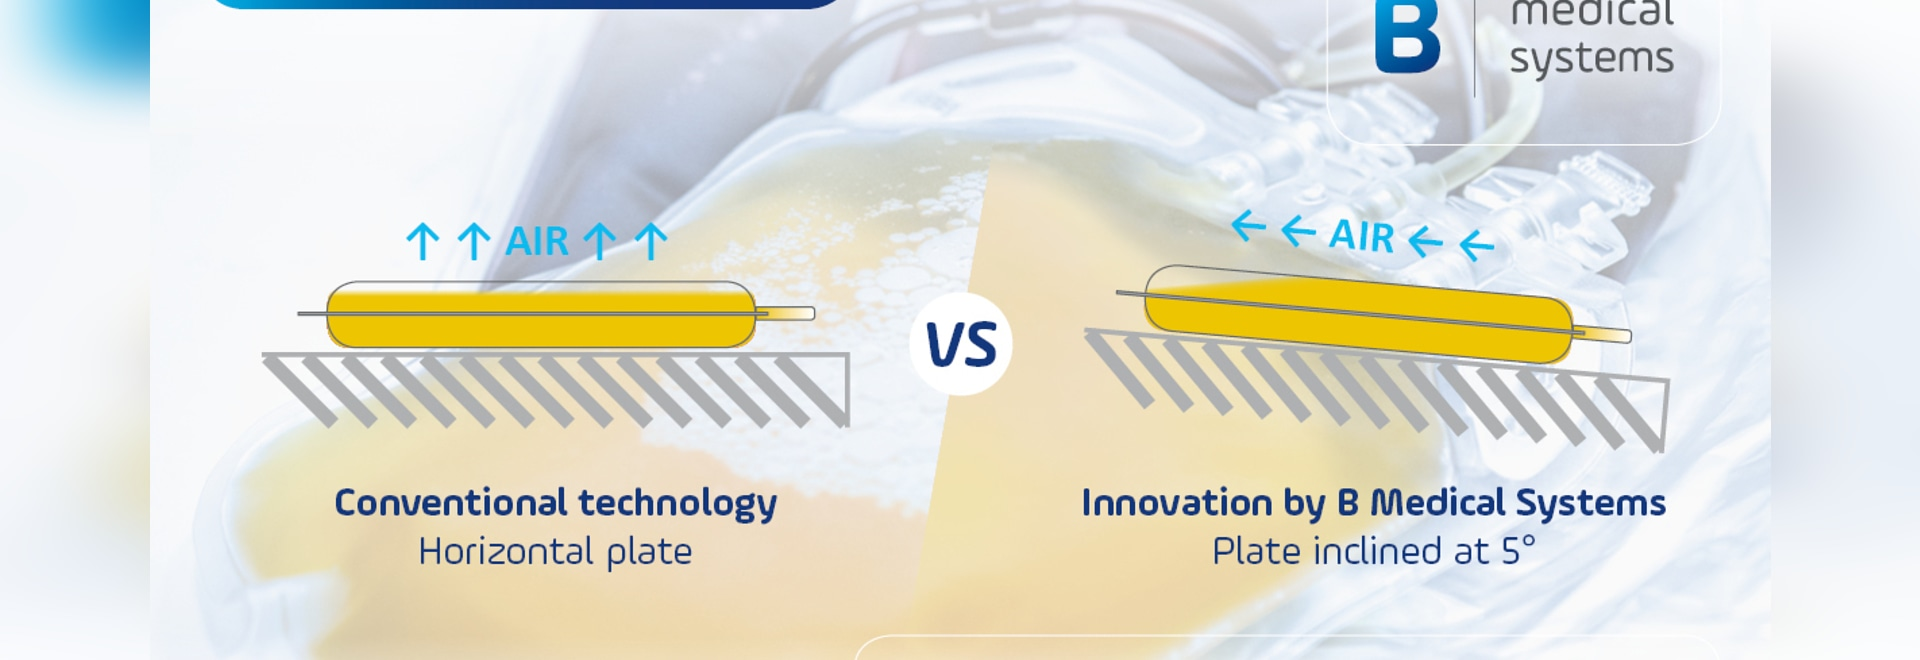 Technological innovation by B Medical Systems for Rapid and Uniform Cooling of Plasma